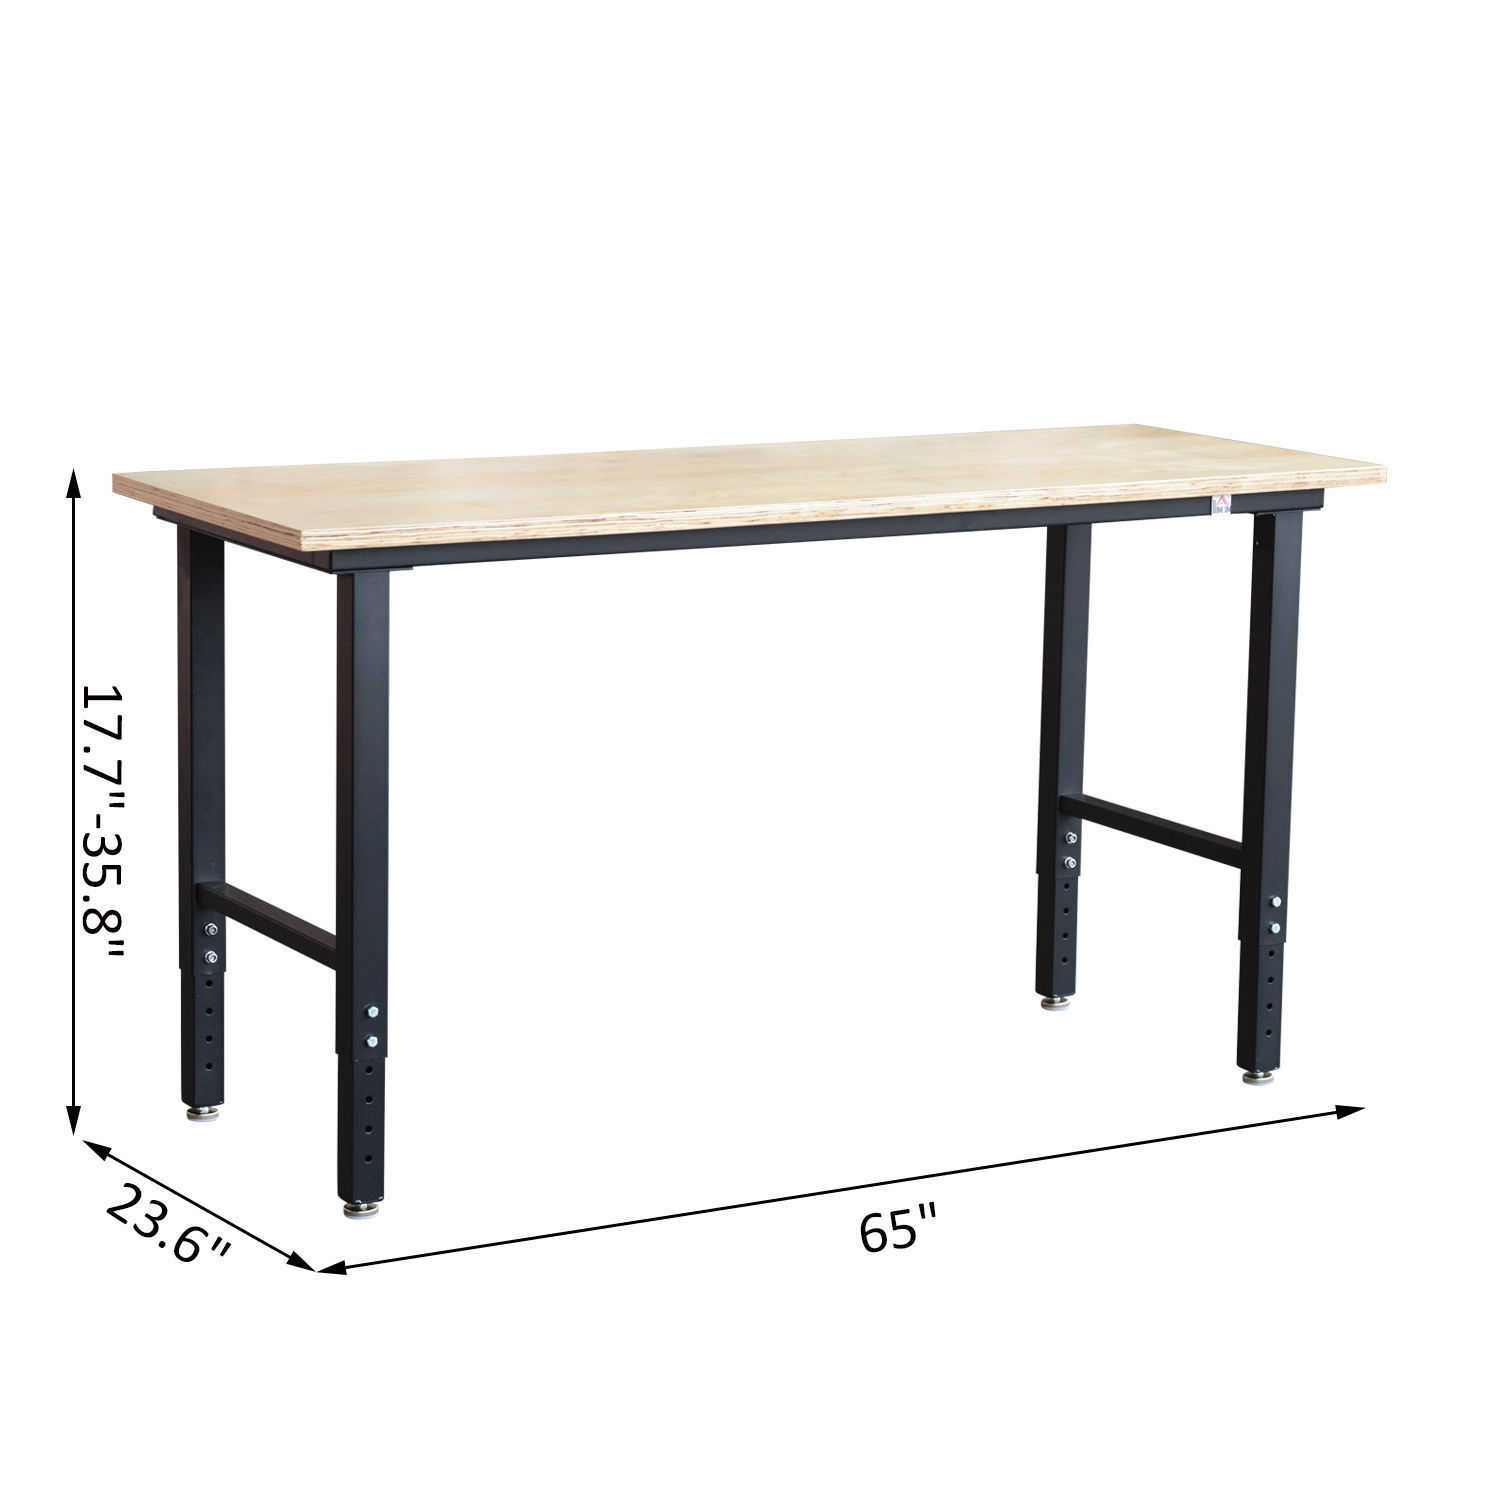 GHP 330-Lbs Capacity Steel Frame Natural Wood Top Adjustable Height Workshop Bench